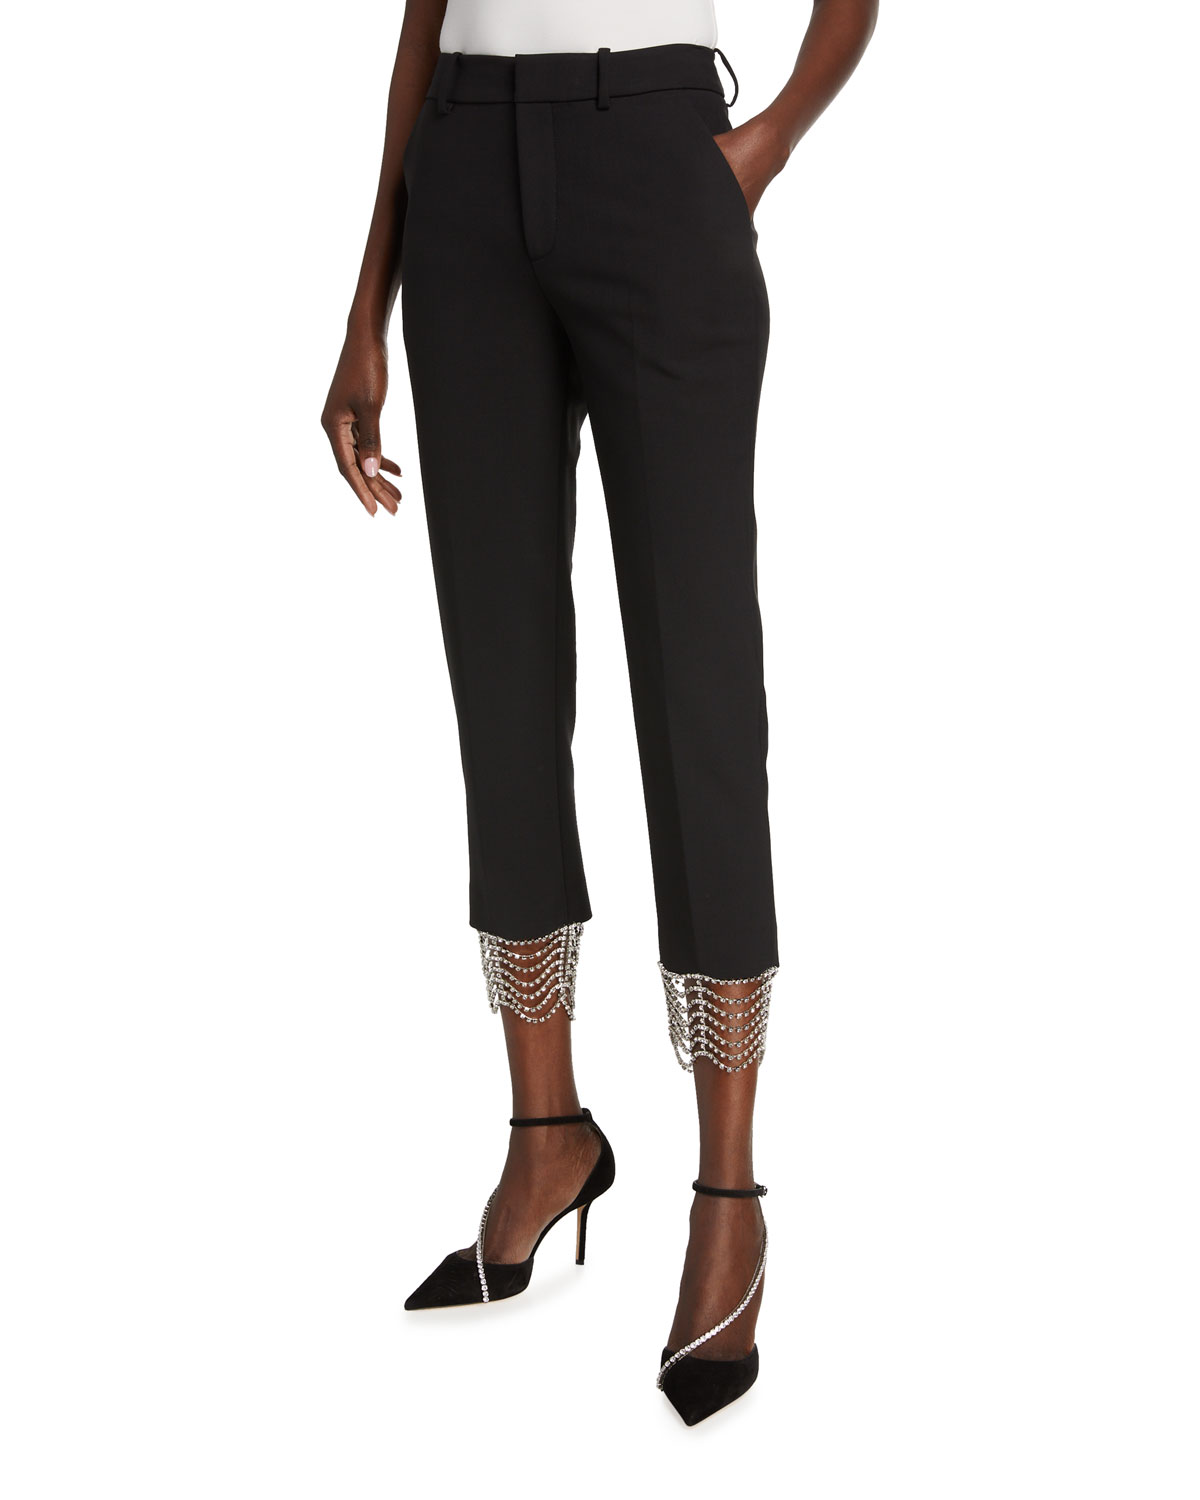 Area Knits CRYSTAL-CAGE CROP PANTS